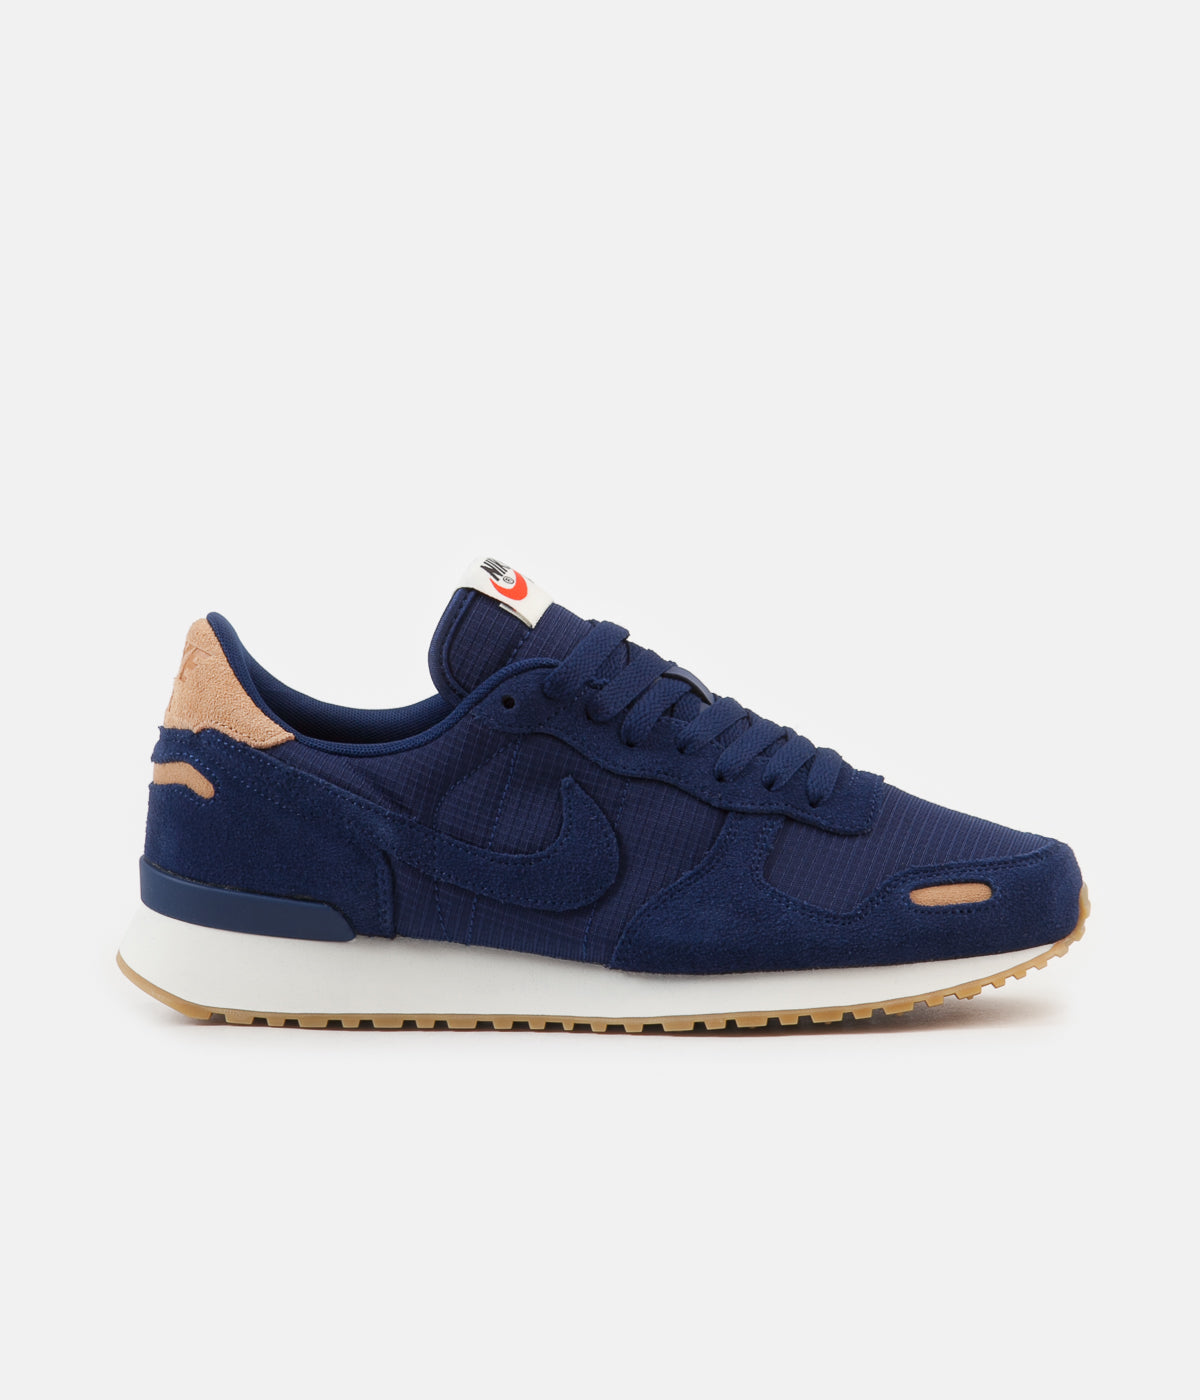 cheaper a1f5a 79c8b ... Nike Air Vortex Leather Shoes - Blue Void  Blue Void - Praline - Sail  ...